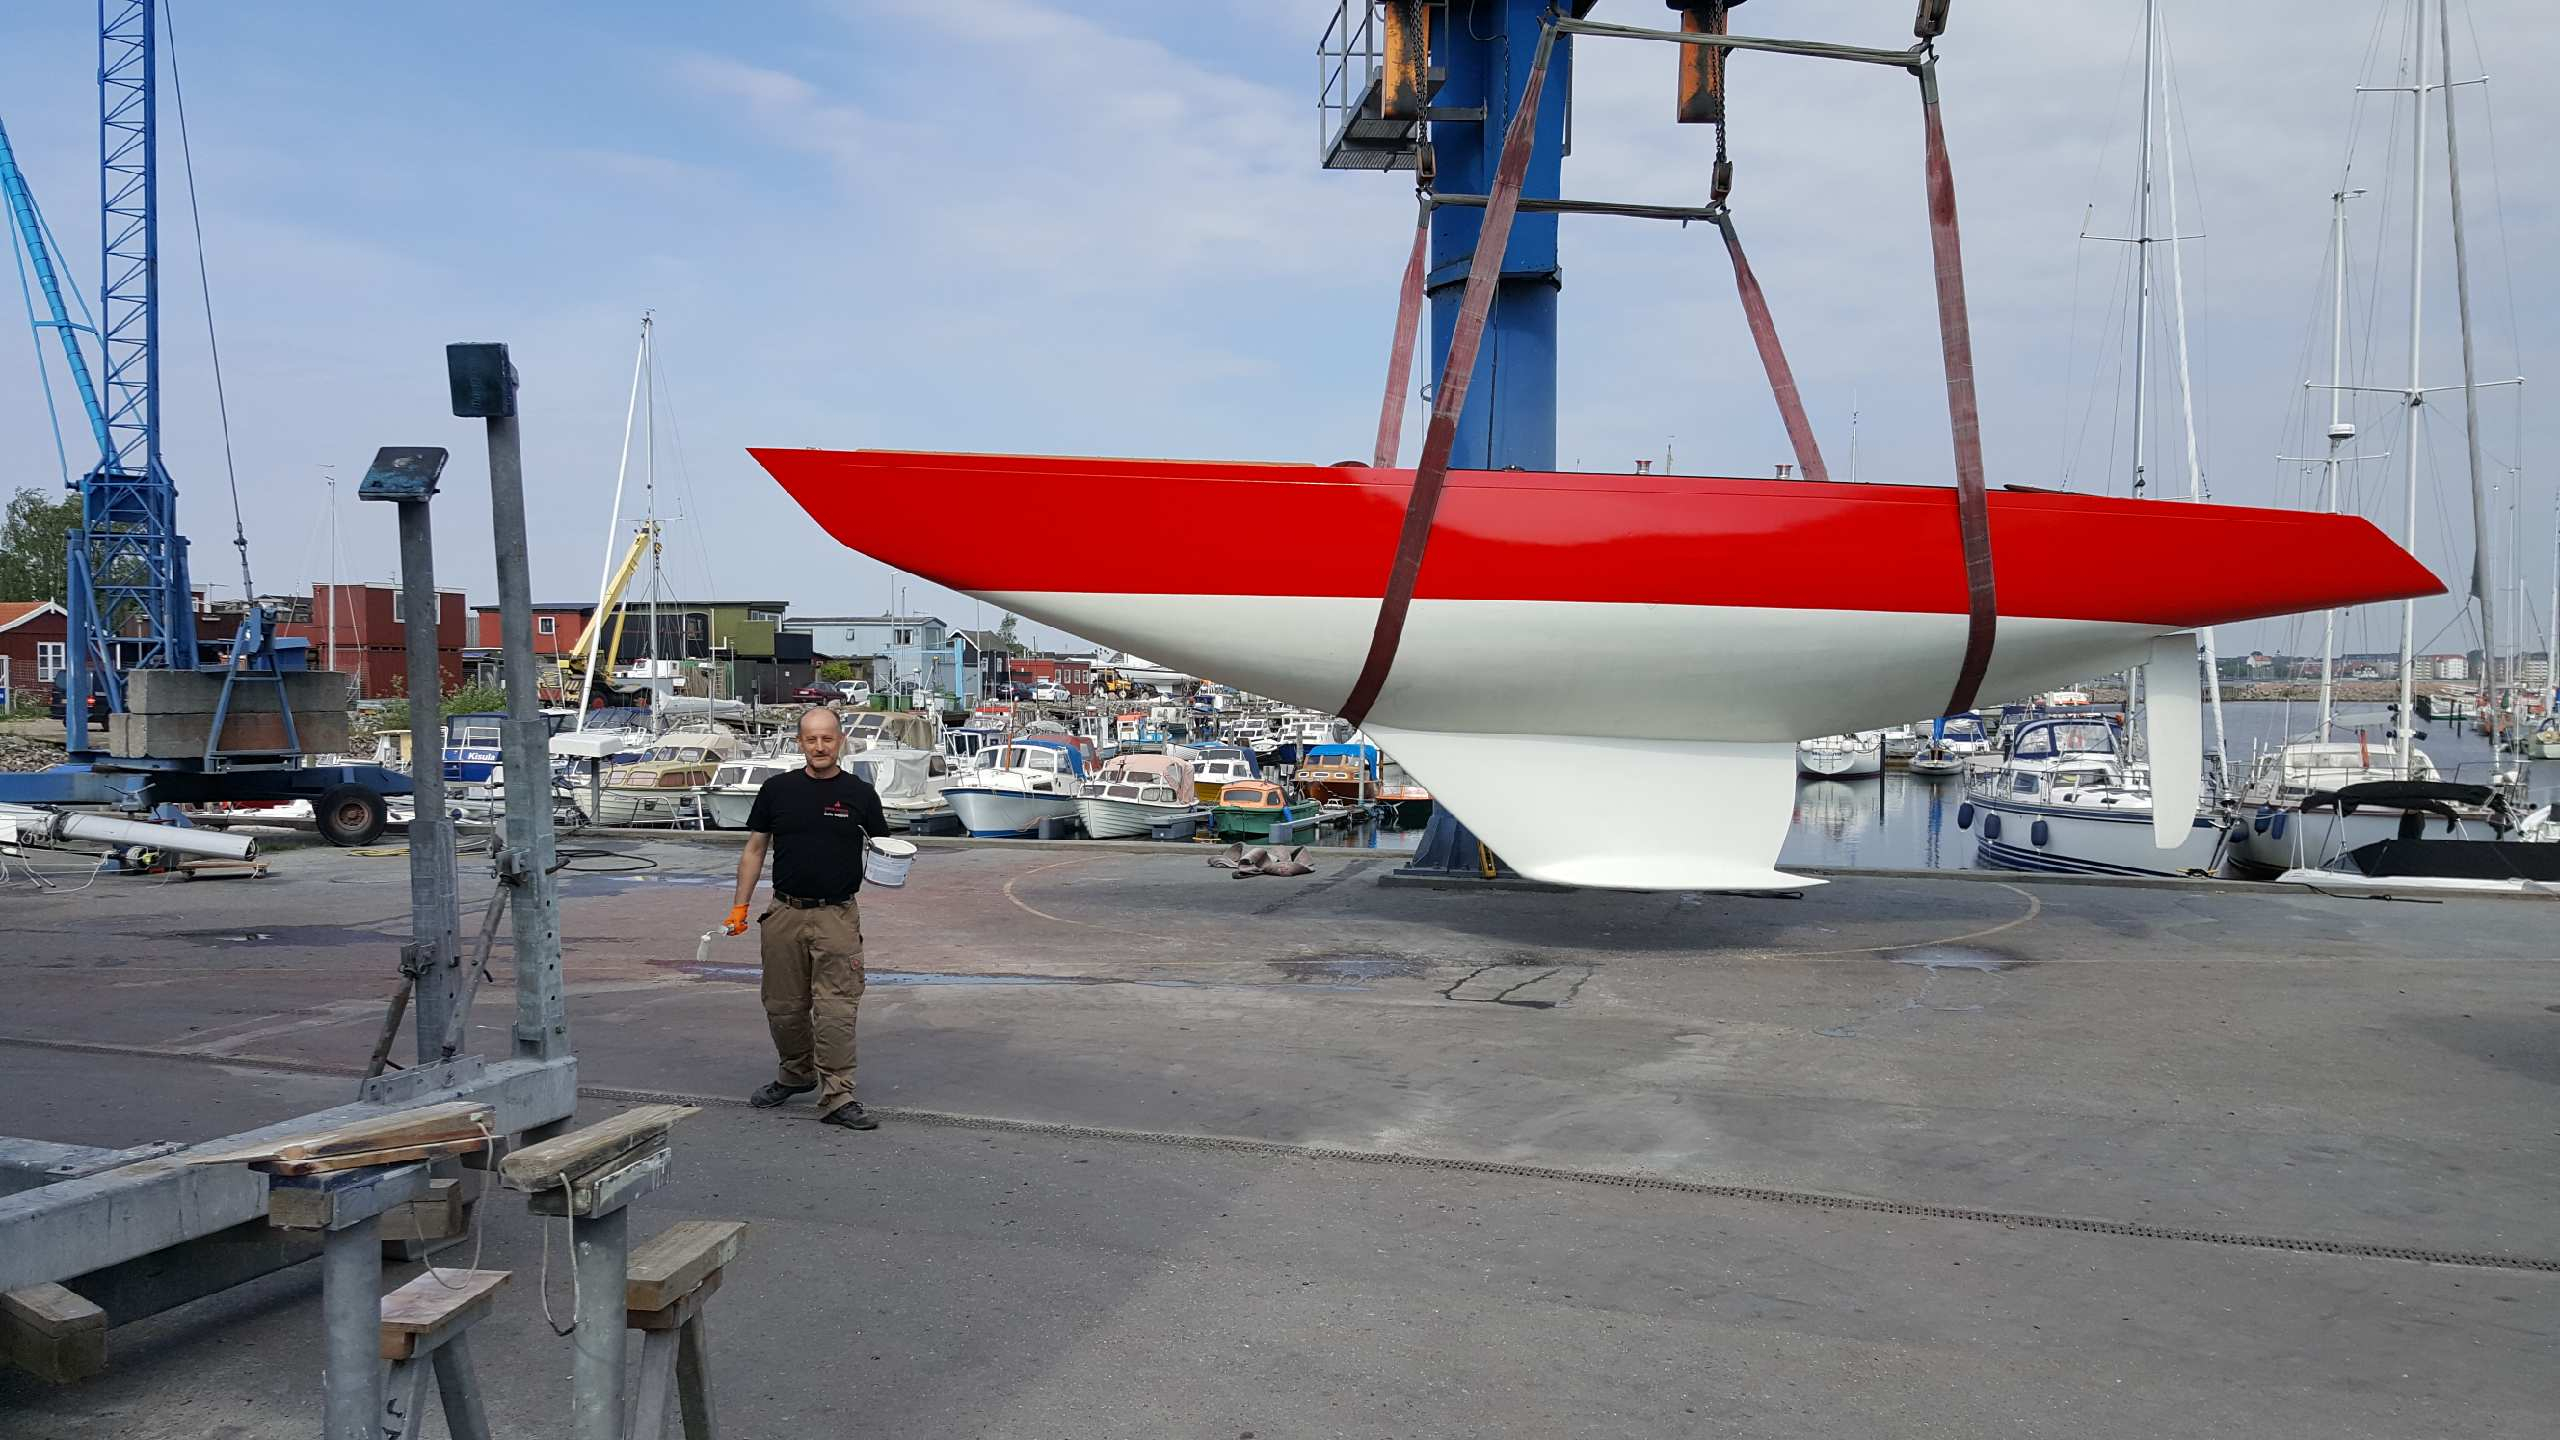 Red sailing boat on a crane